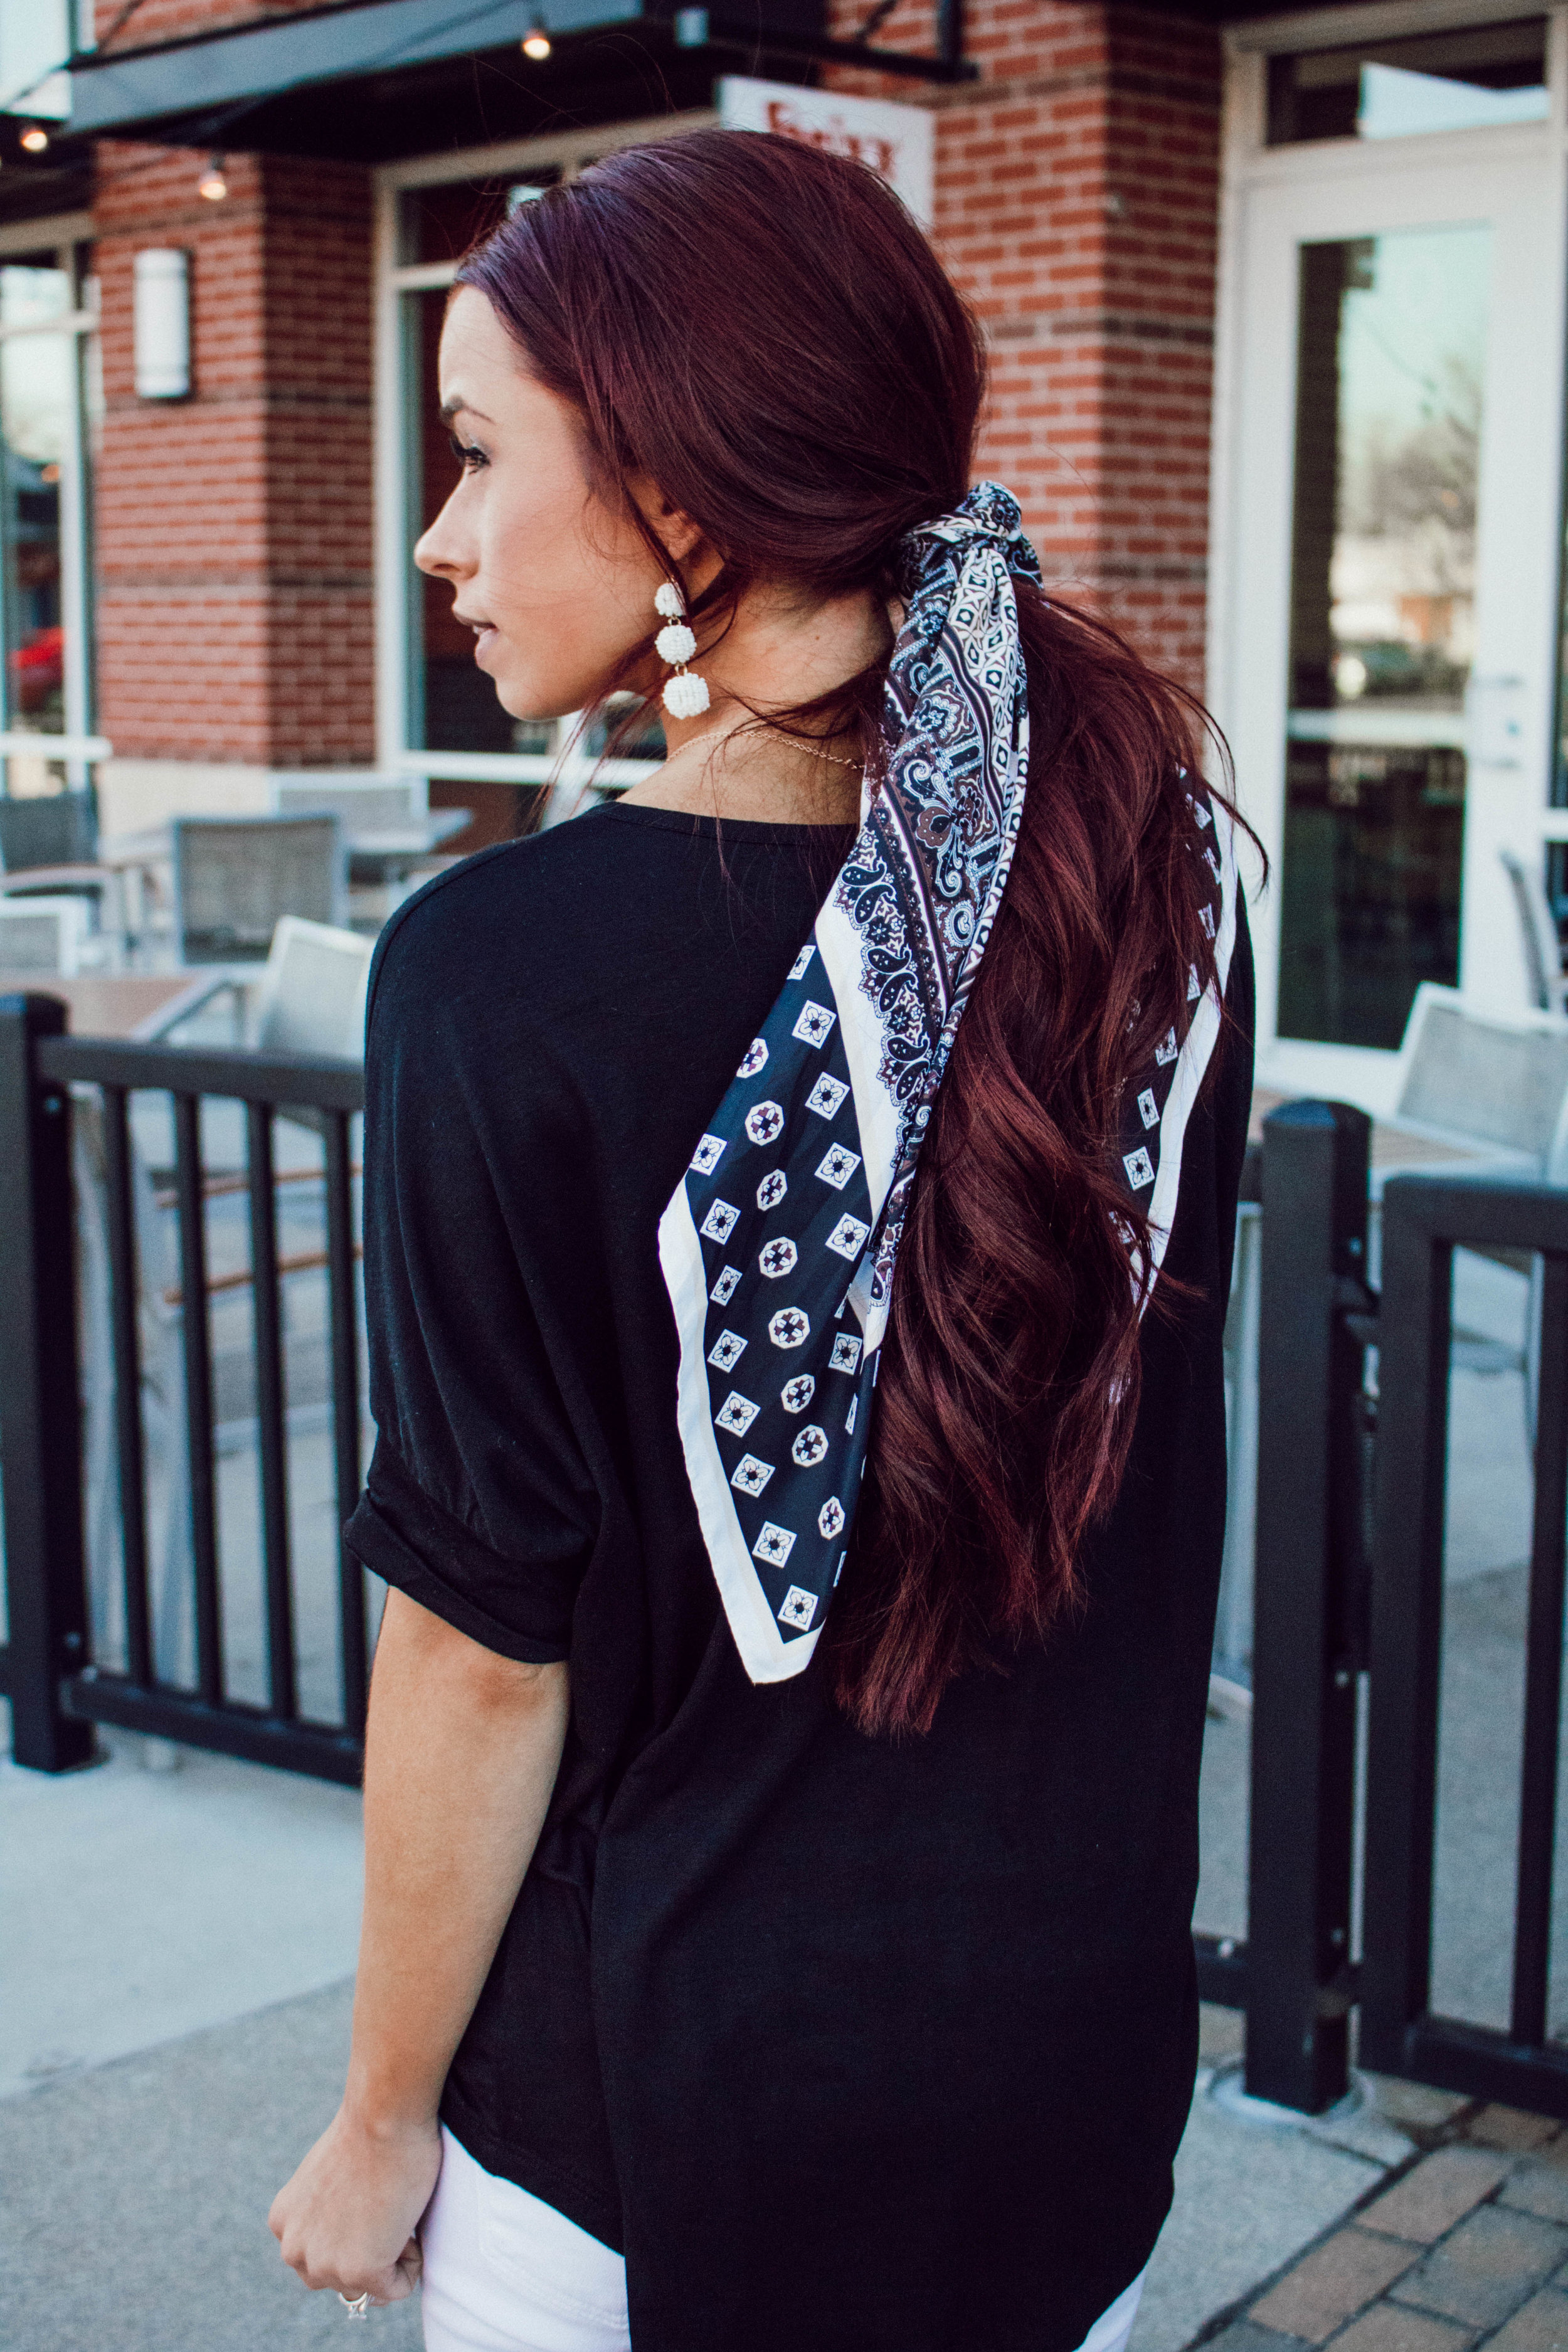 5 Fashion Hacks to Change Up Your Look by popular Indianapolis fashion blogger Trendy in Indy